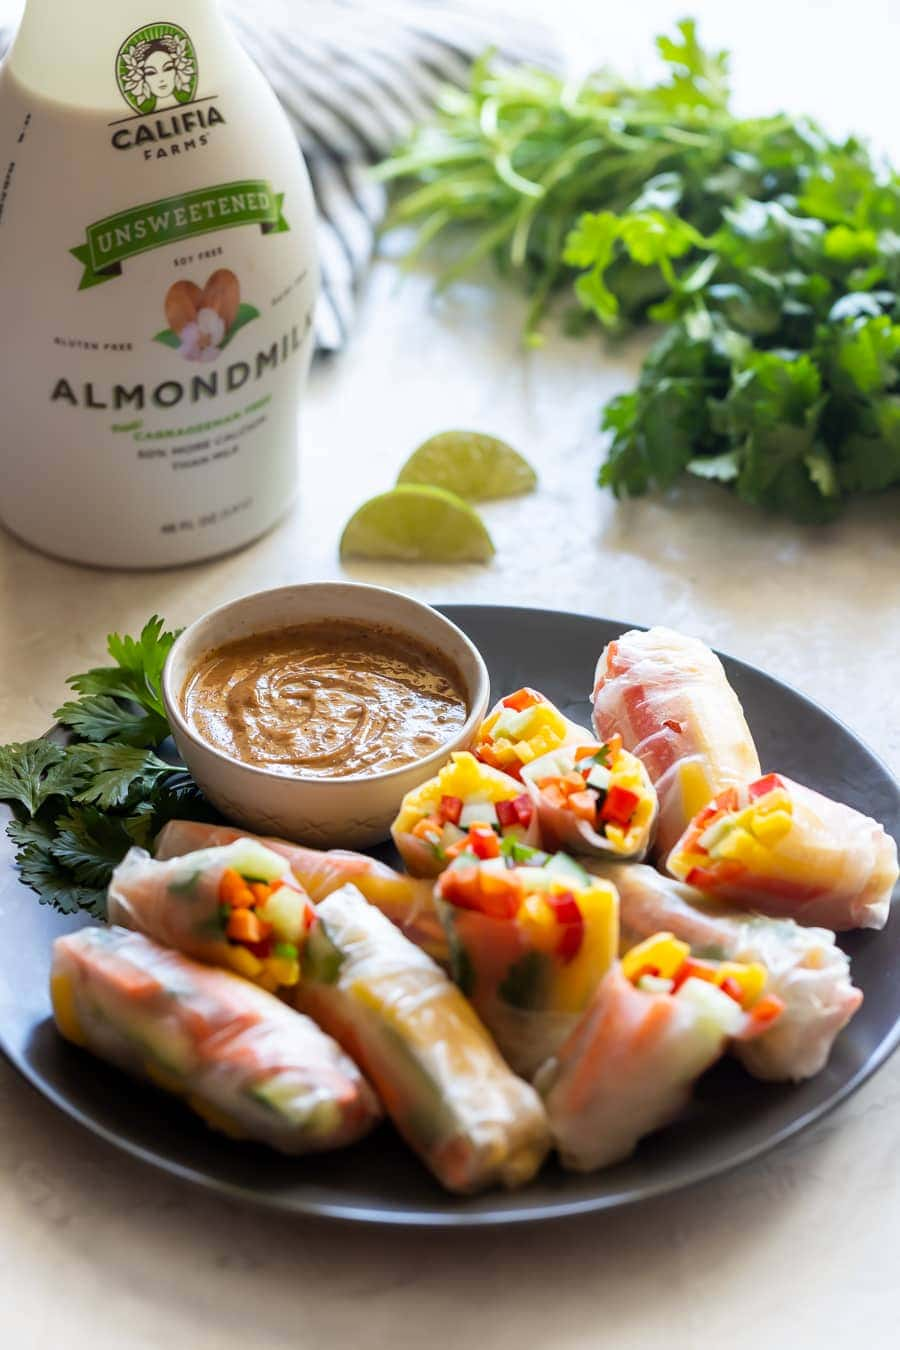 vegetable spring rolls with spicy peanut sauce and califia unsweetened almond milk